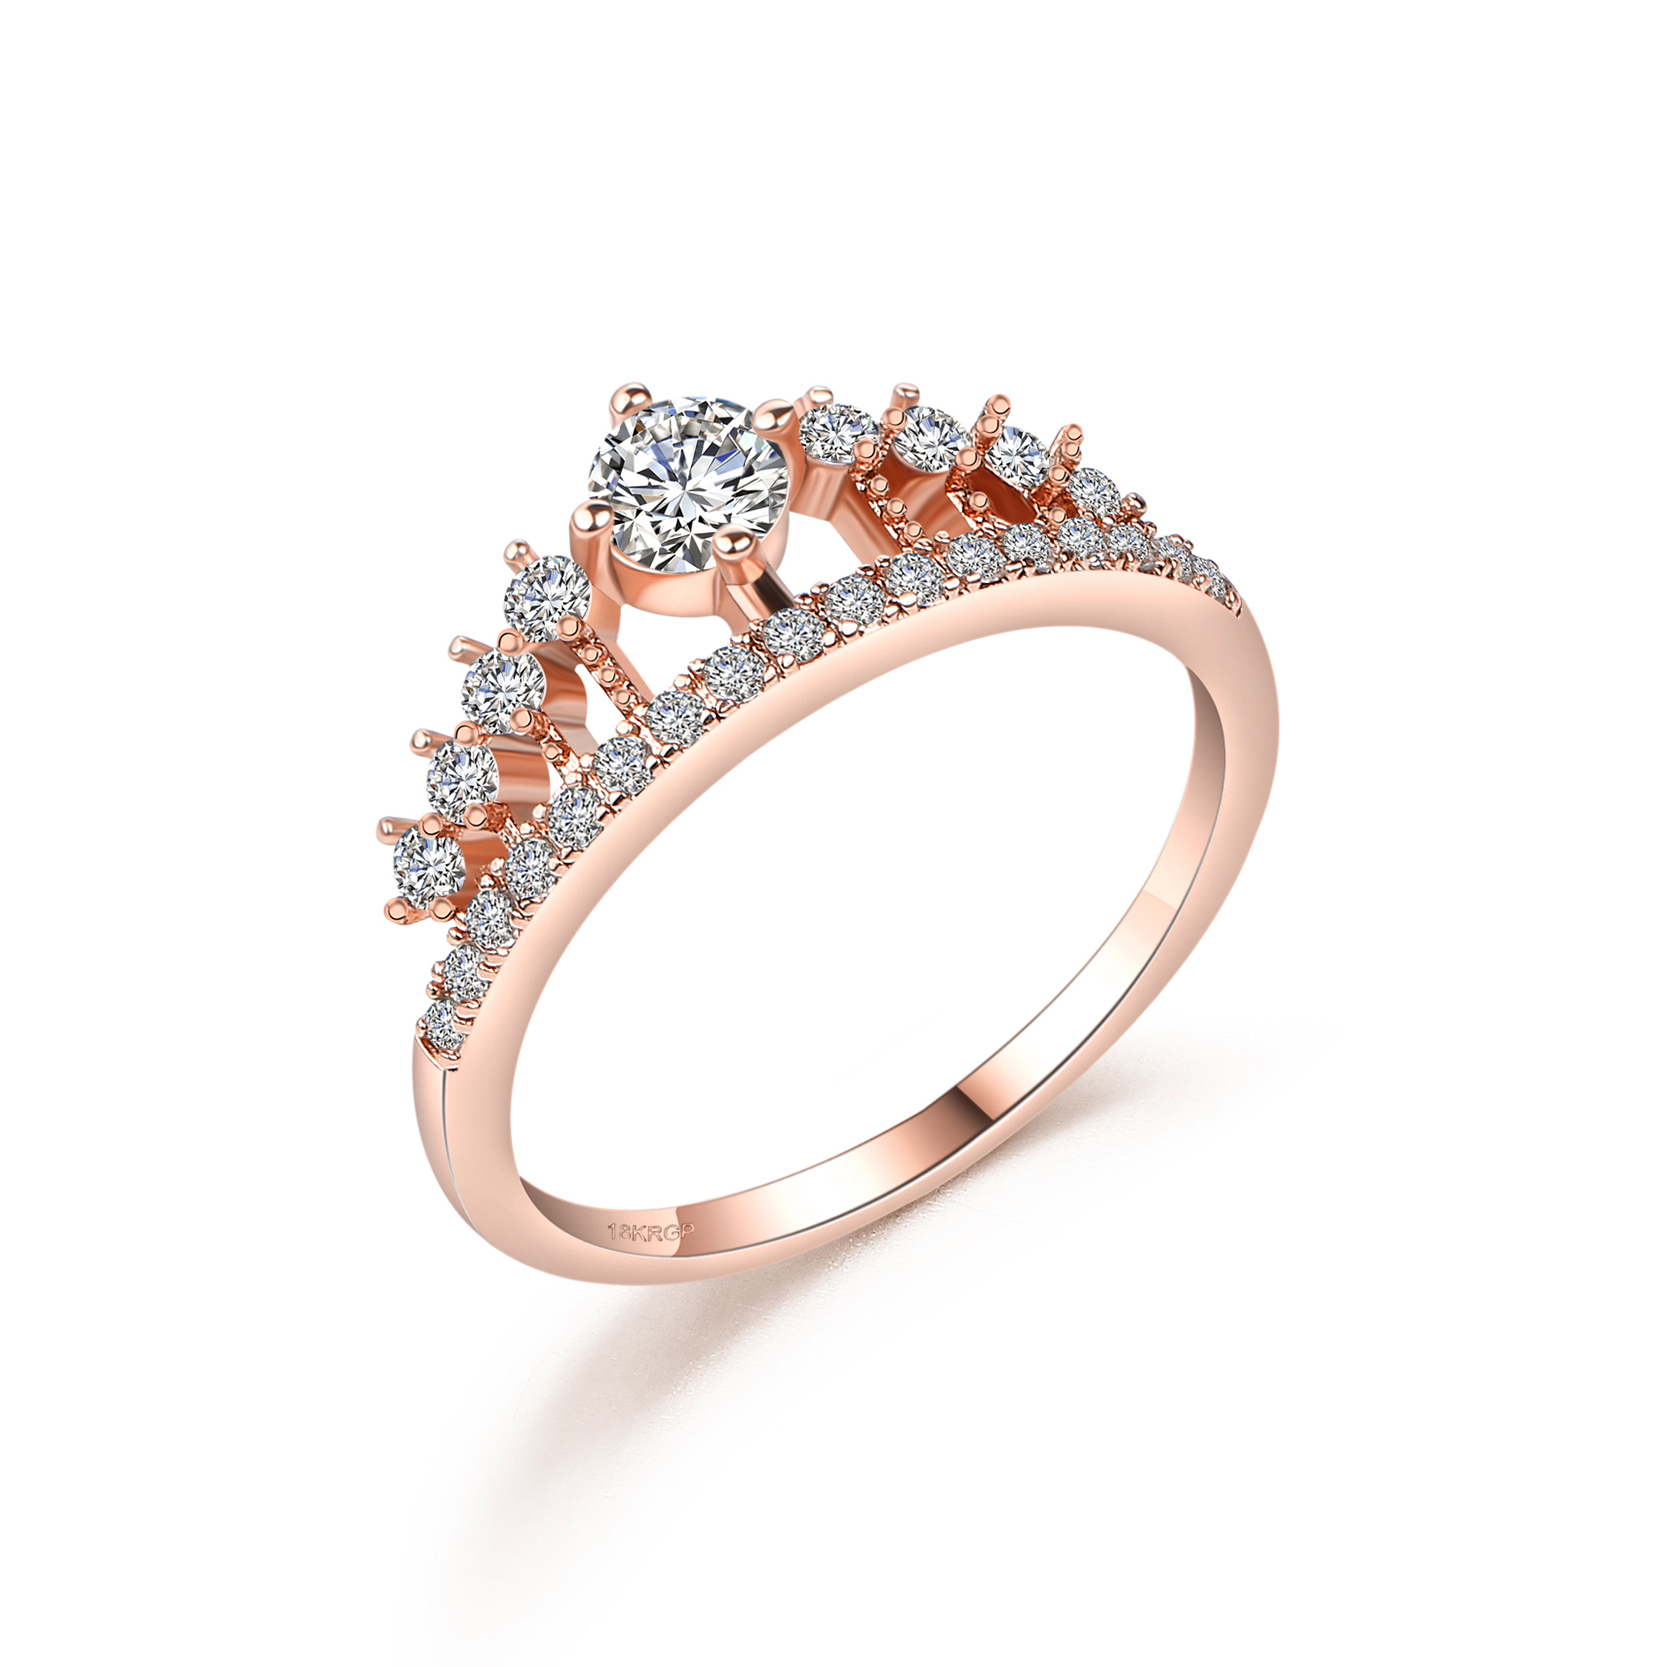 Wedding Rings and Rose Gold Jewelry – the Absolute Trend Color